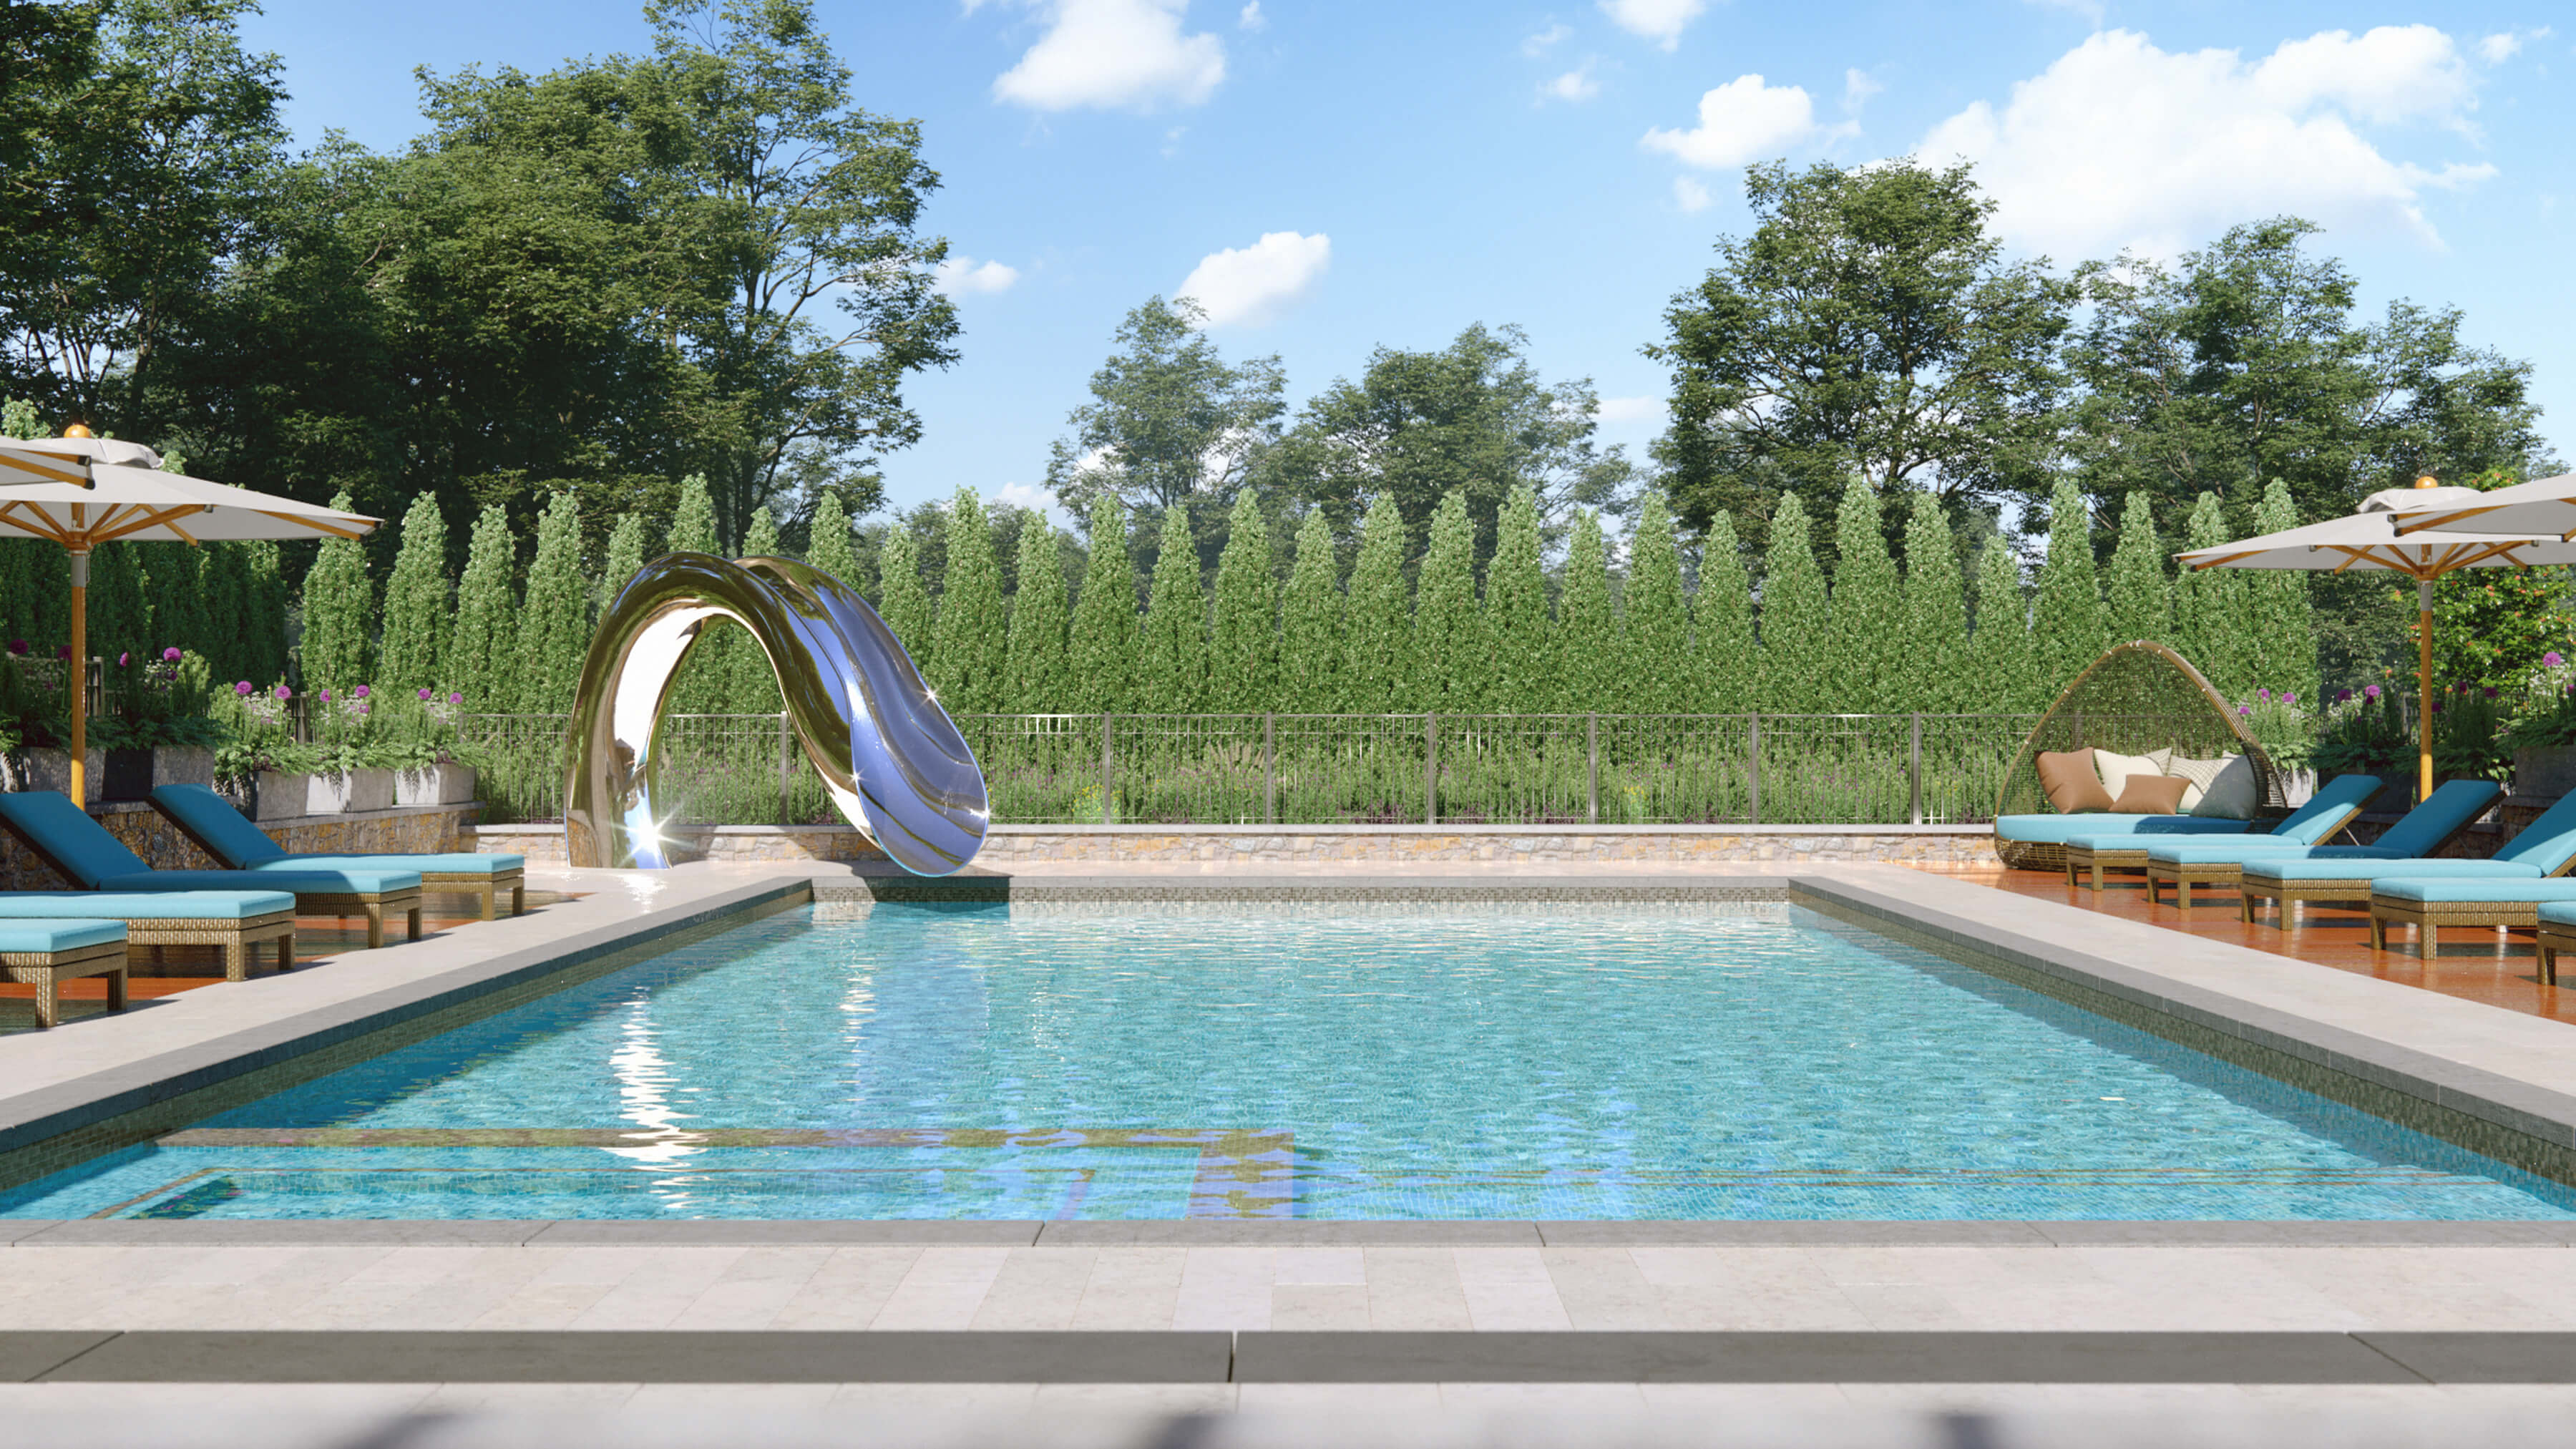 Custom water slide designed by Splinterworks next to pool with blue loungers.